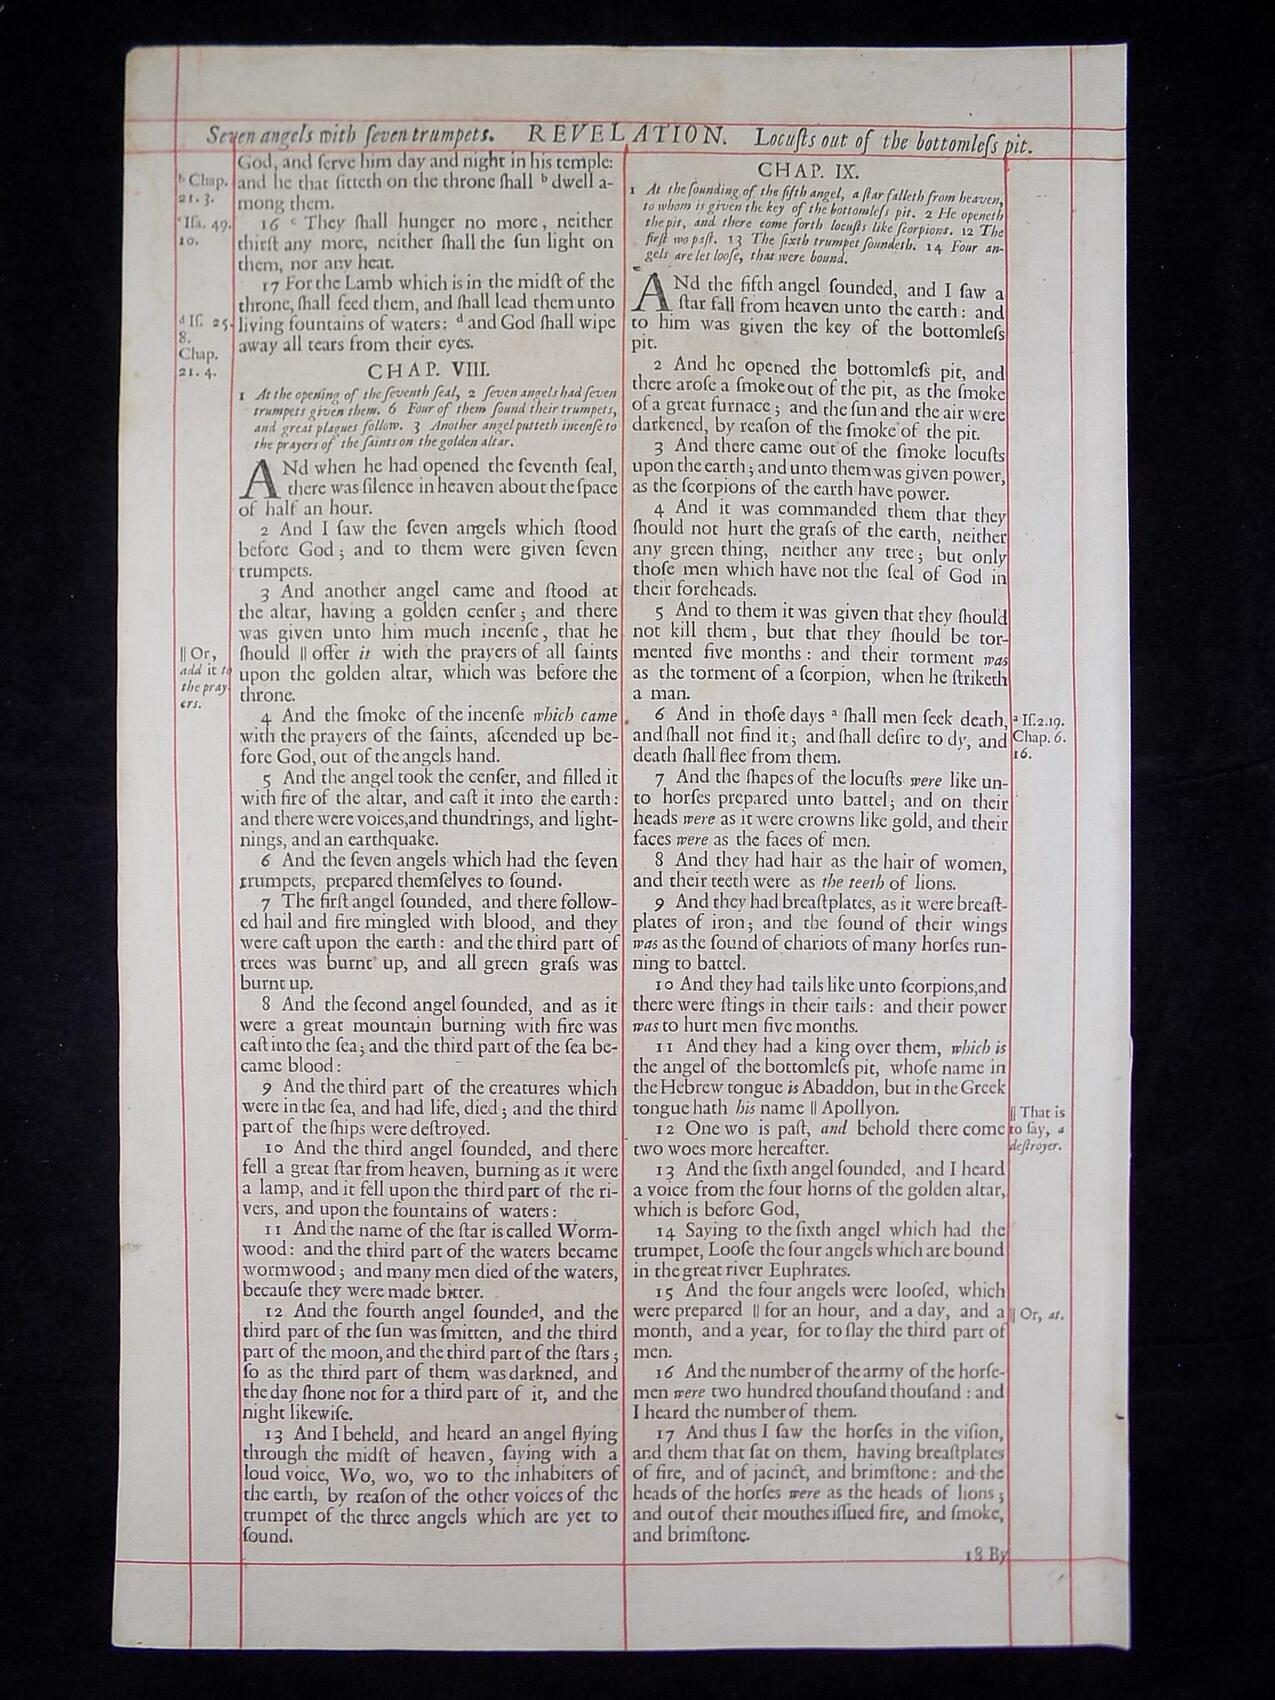 1680 OXFORD KJV REVELATION LEAVES